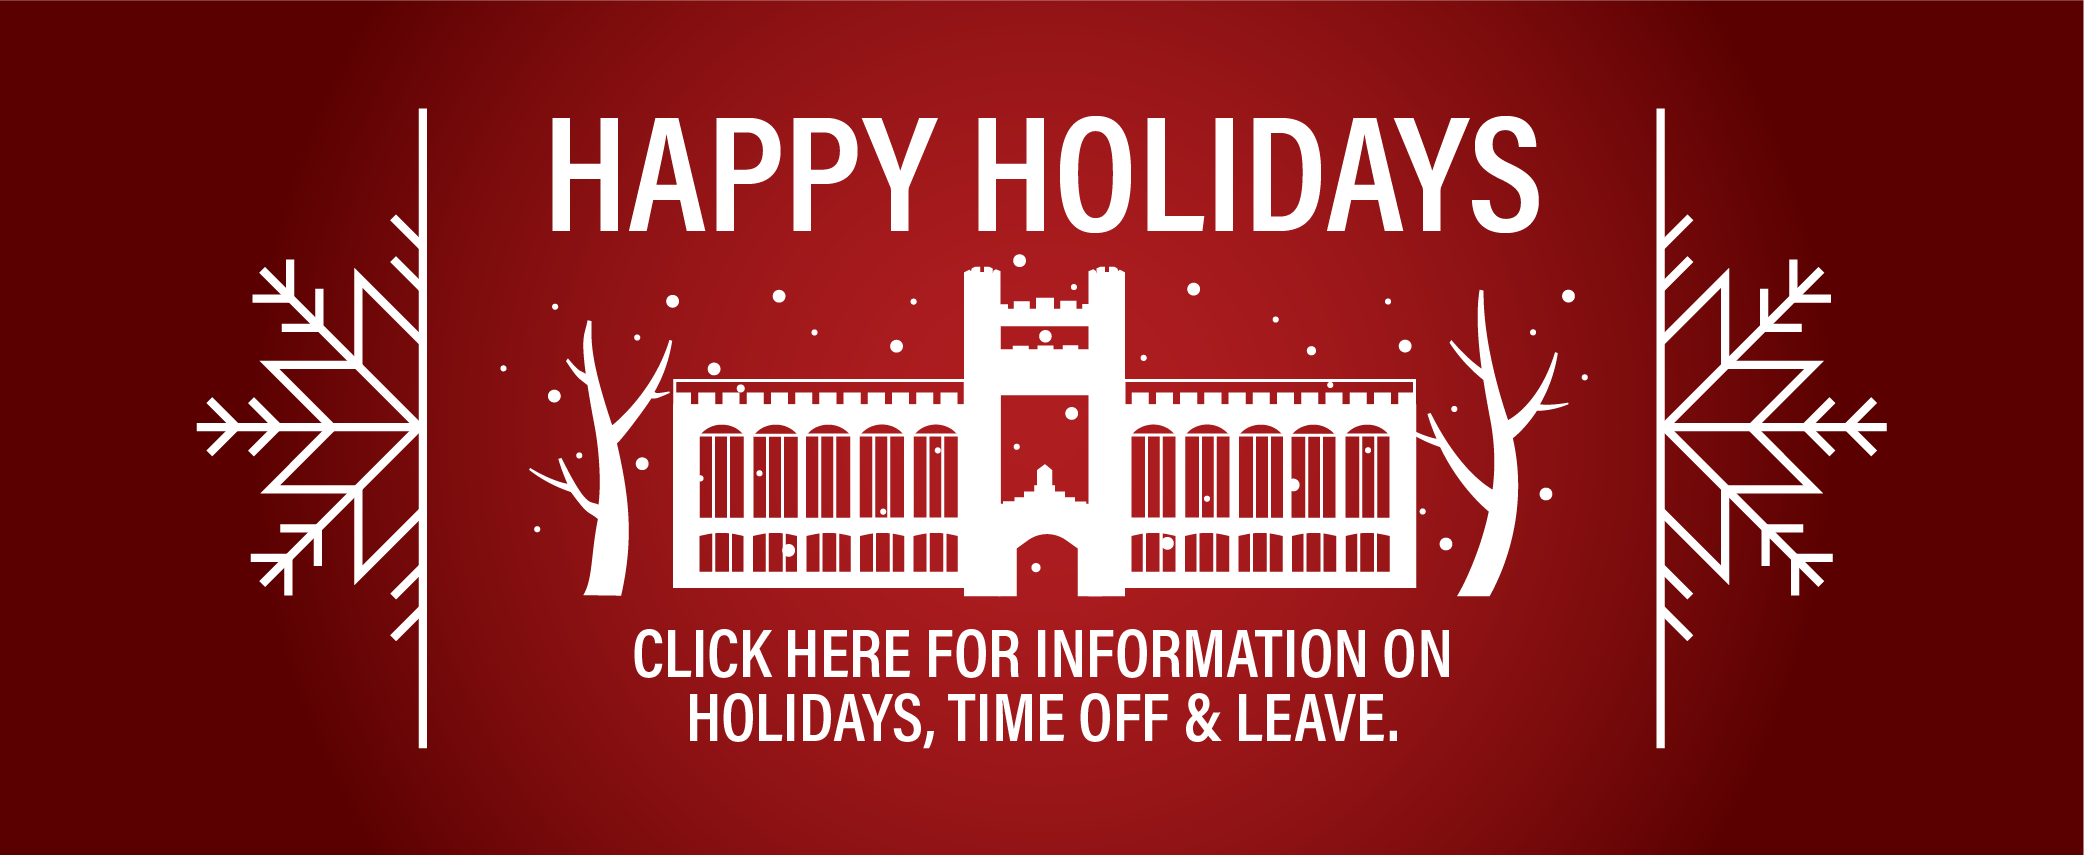 Click here for information about holidays, time off, and leave.